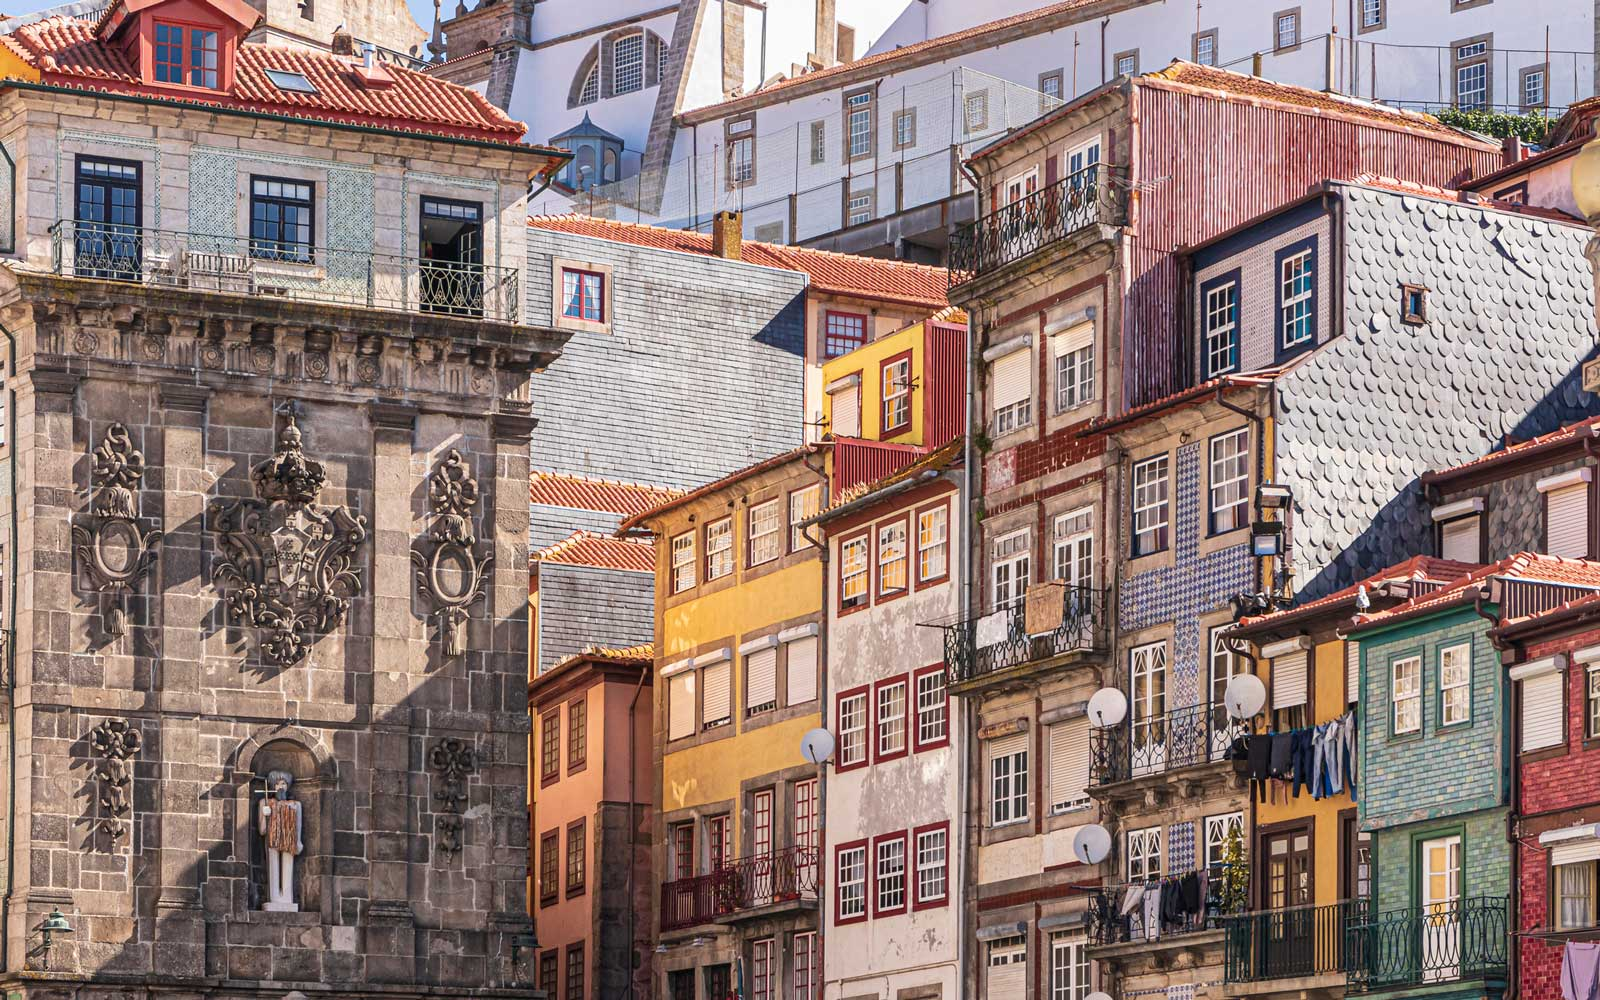 Building facades on Ribeira Square in Porto, Portugal